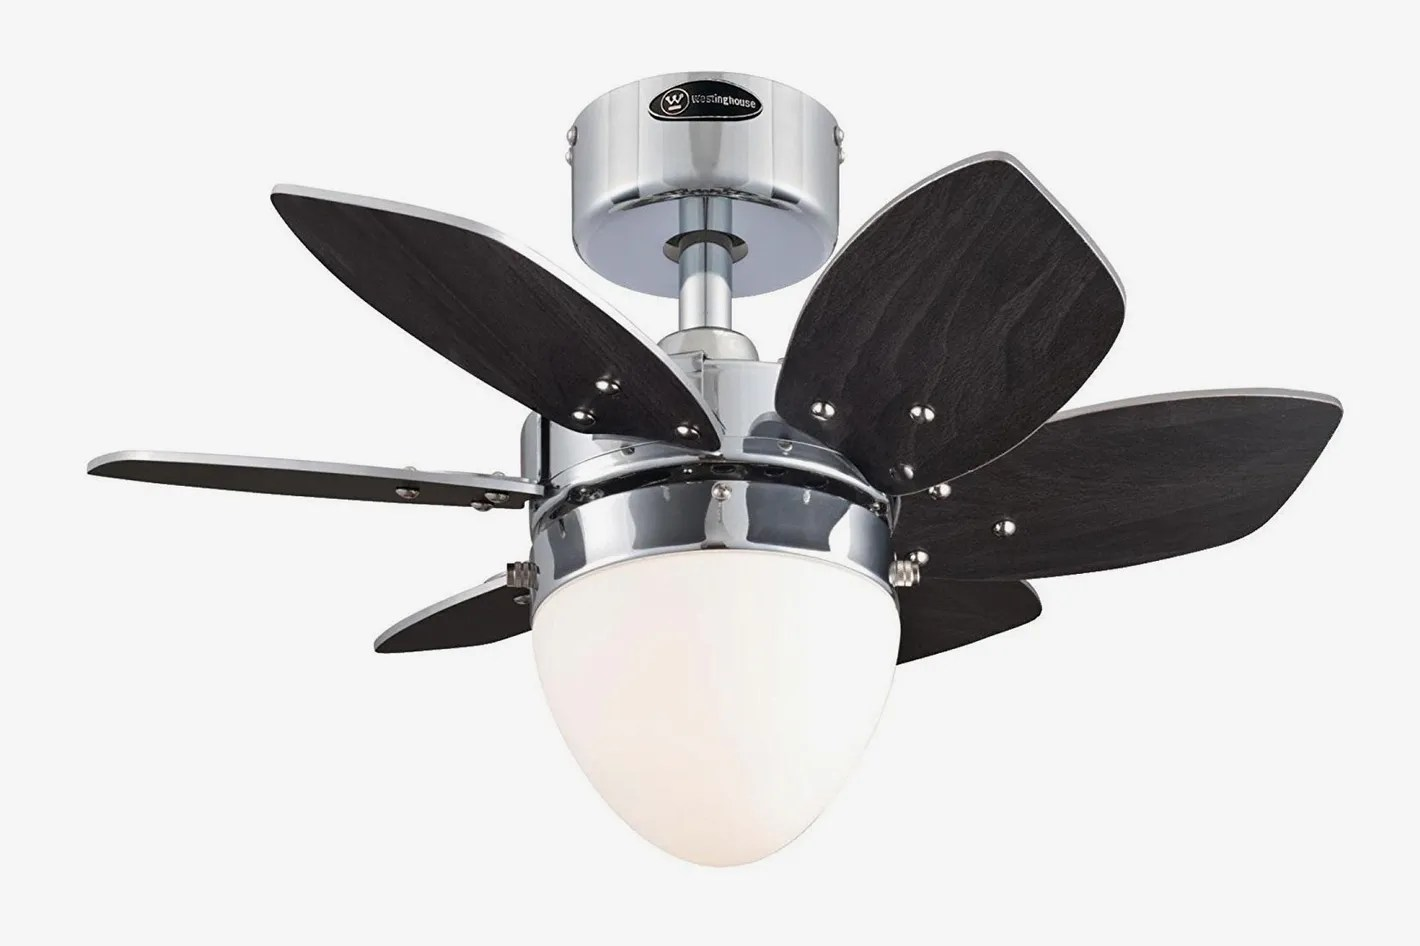 Ceiling Fan Sale Canada Westinghouse Origami Single Light 24 Inch Reversible Six Blade Indoor Ceiling Fan